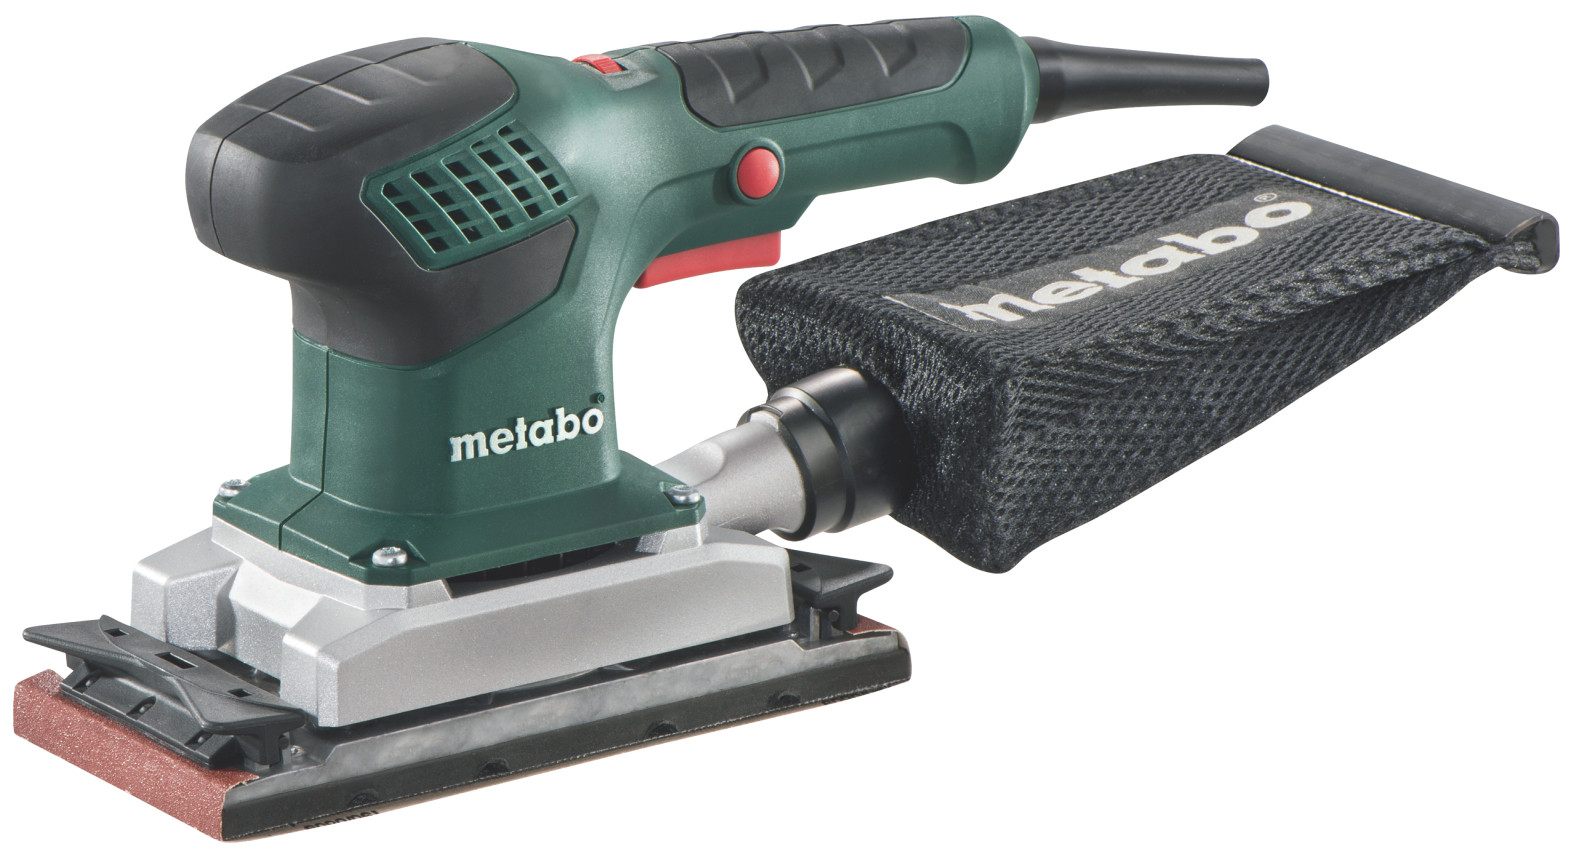 Metabo SRE 3185 Vlakschuurmachine 200w 92x184mm | in koffer - 600442500